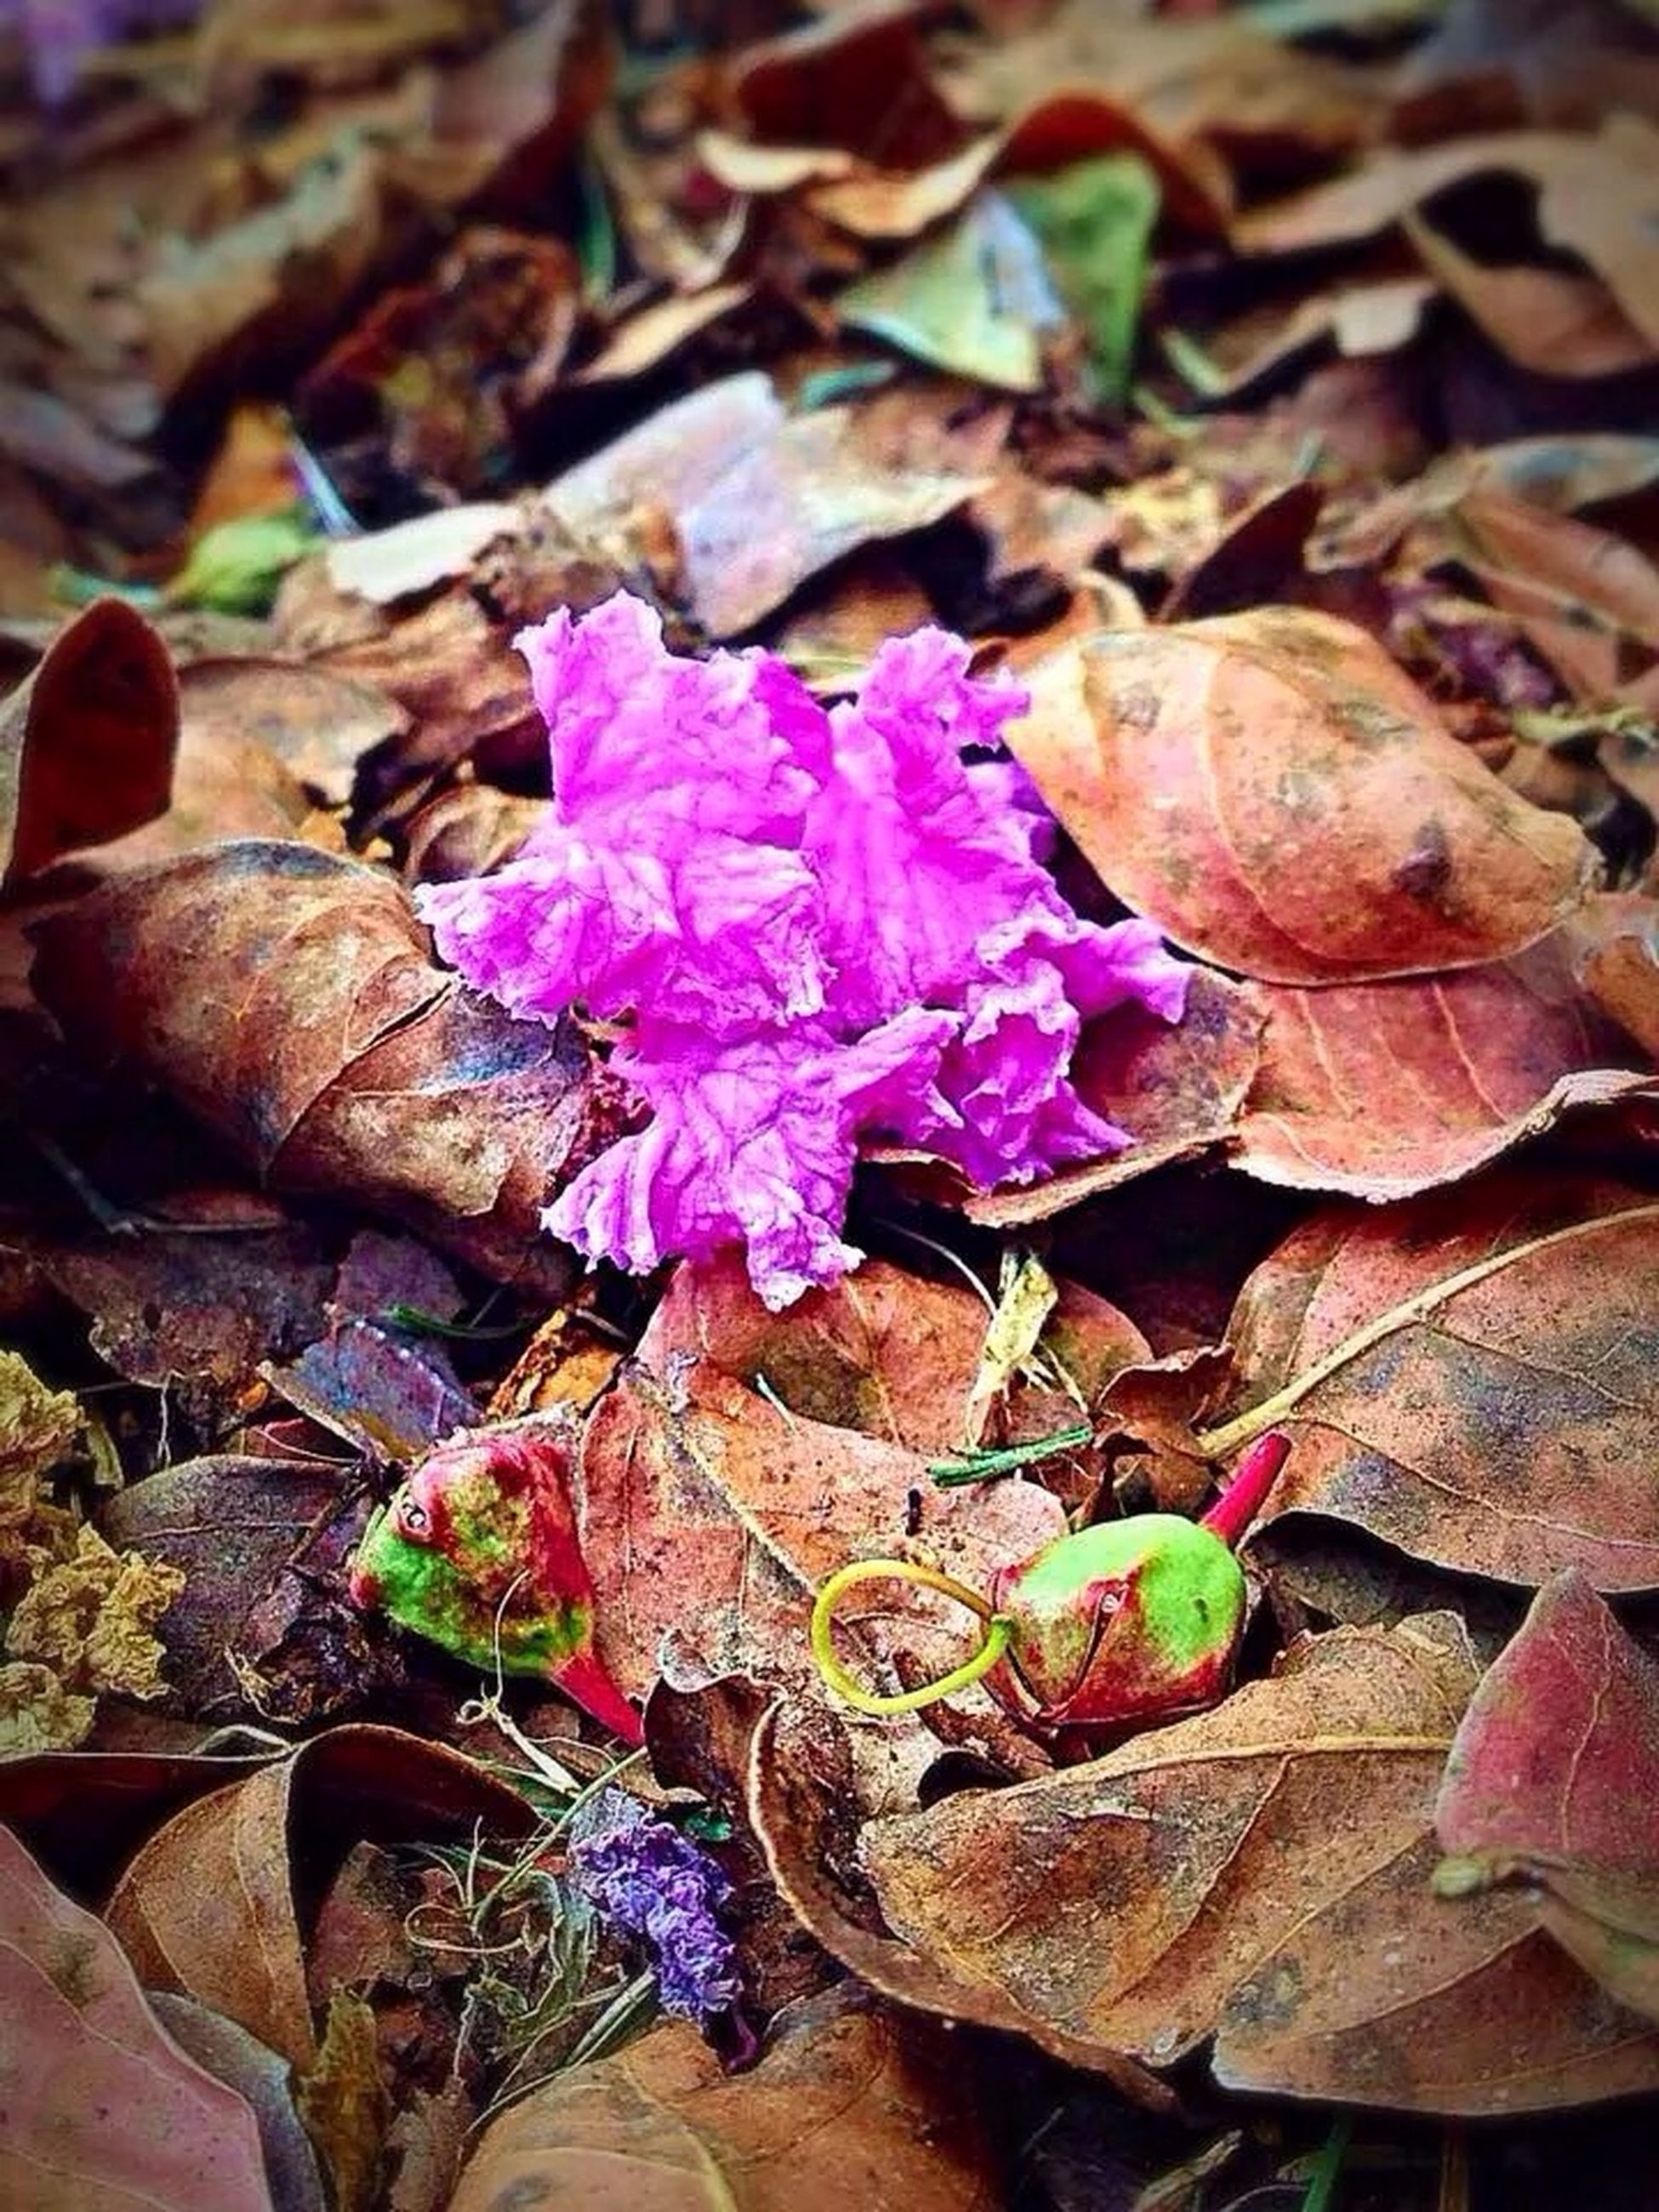 purple, dry, fragility, close-up, flower, leaf, high angle view, nature, freshness, autumn, fallen, petal, season, beauty in nature, change, no people, outdoors, day, plant, focus on foreground